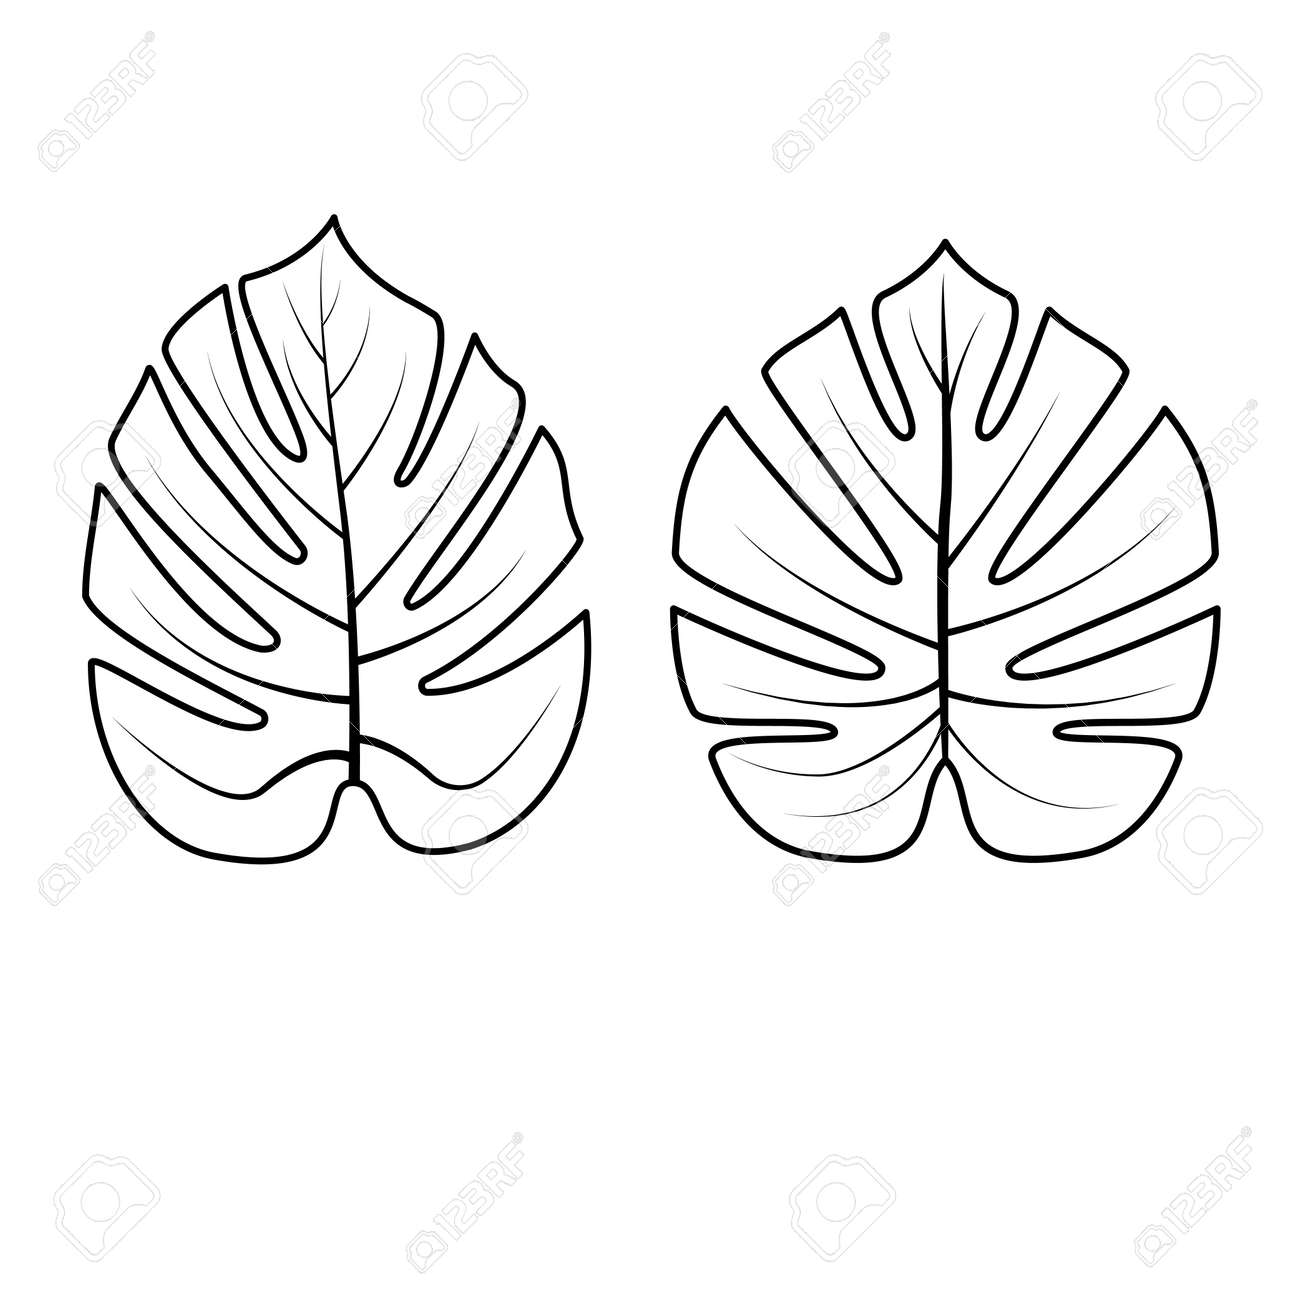 Tropical Palm Leaves Isolated On White Background Outline Vector Royalty Free Cliparts Vectors And Stock Illustration Image 94982953 Sometimes i am overwhelmed of quantity of orders i receive. tropical palm leaves isolated on white background outline vector